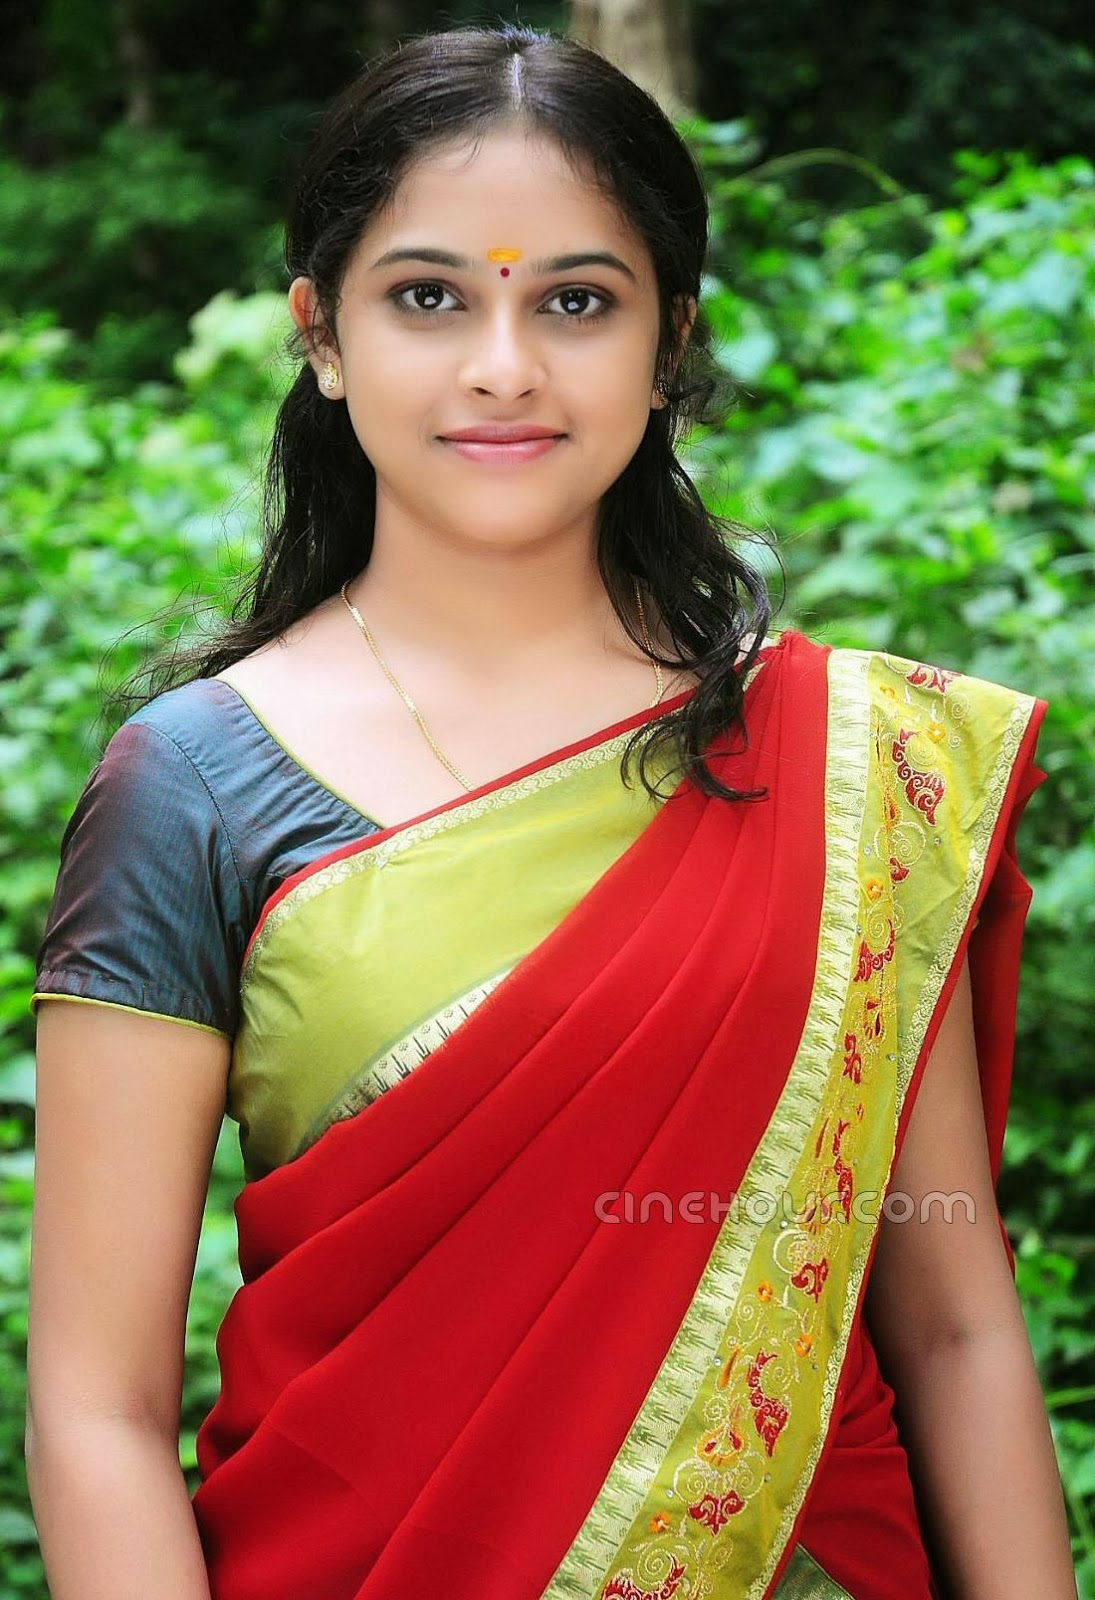 Actress Sri Divya Photos: Tamil Boobs Show : Actress Sri Divya